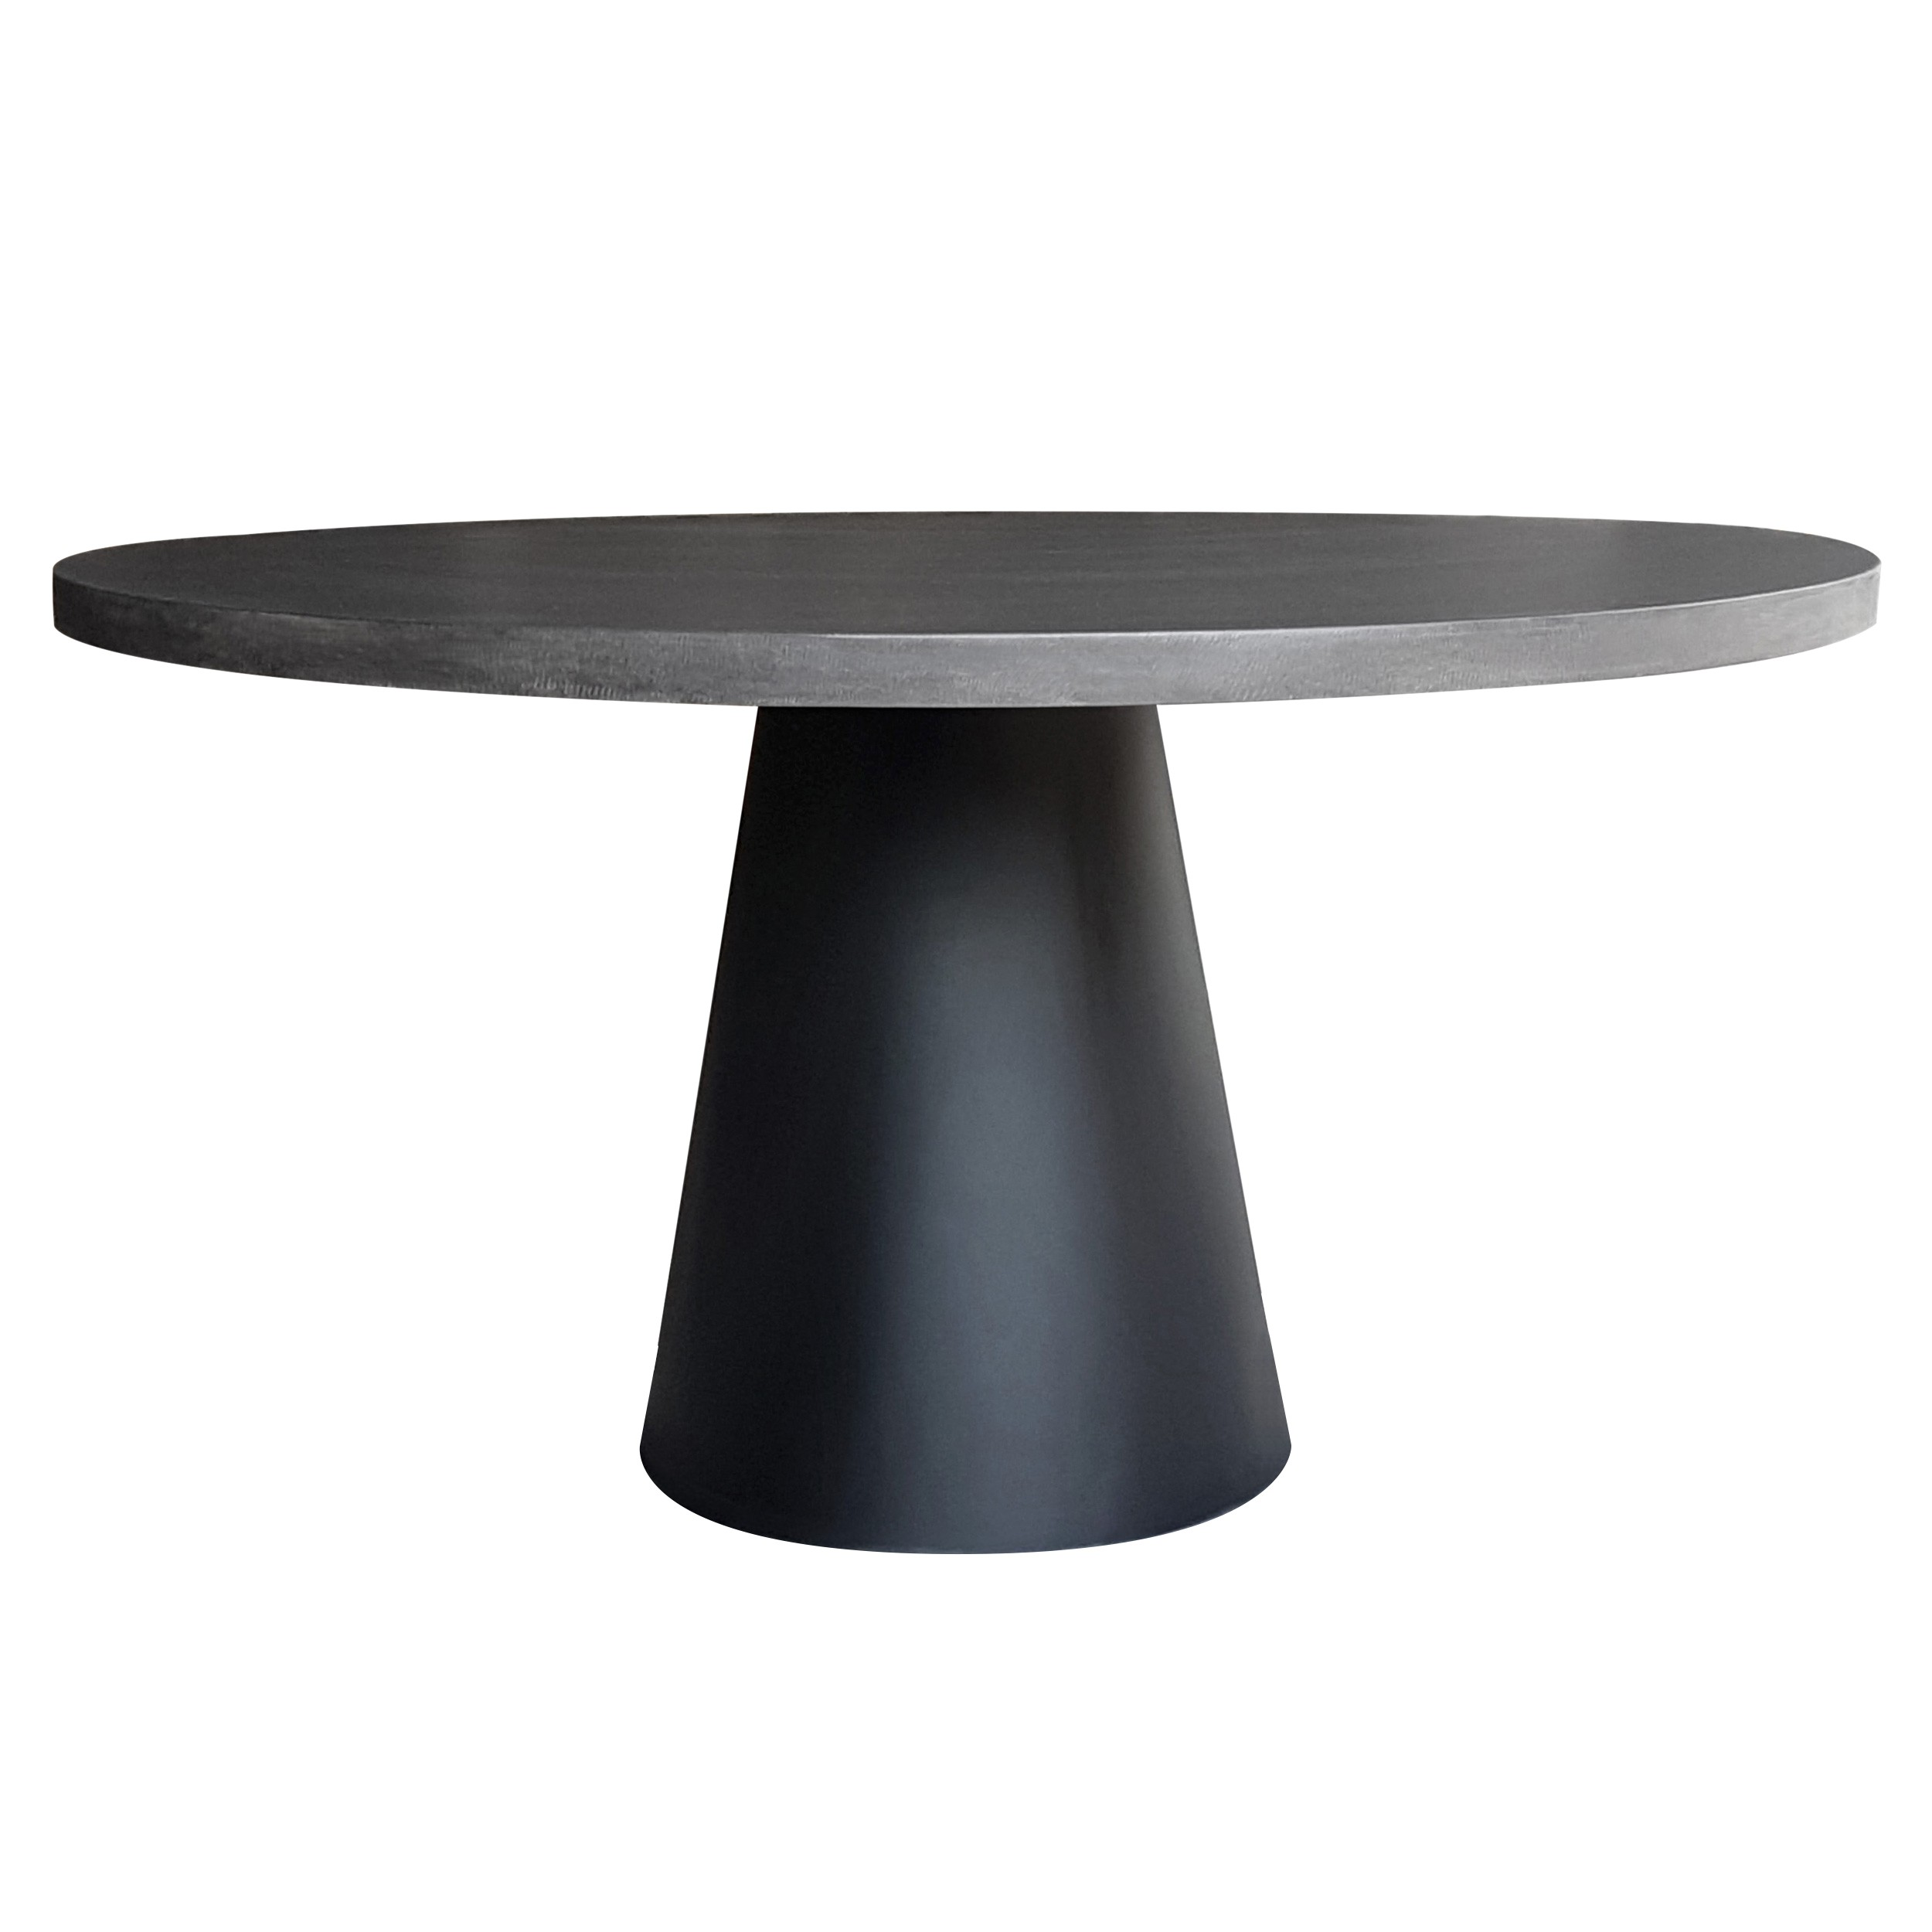 Table Fuji ronde lavastone 140cm